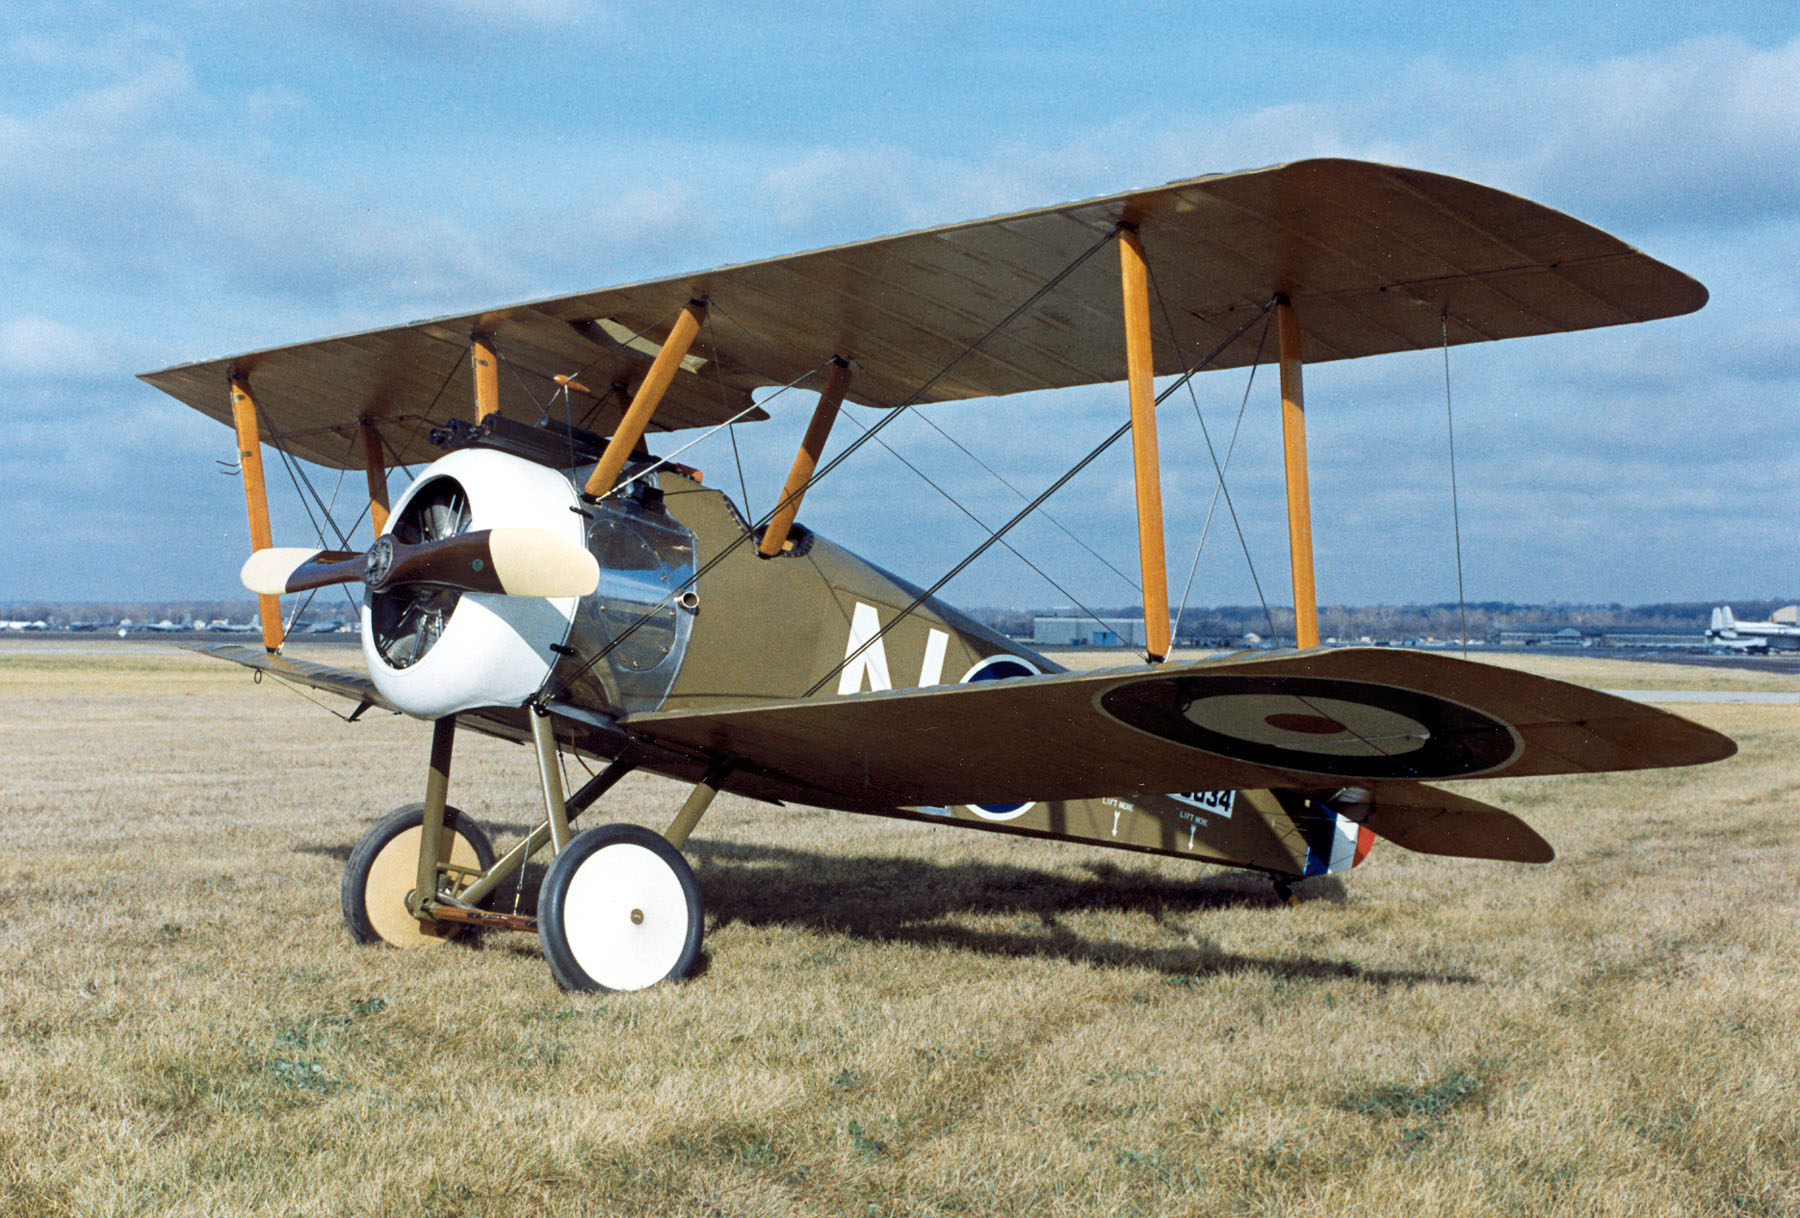 http://upload.wikimedia.org/wikipedia/commons/e/e3/Sopwith_F-1_Camel_2_USAF.jpg